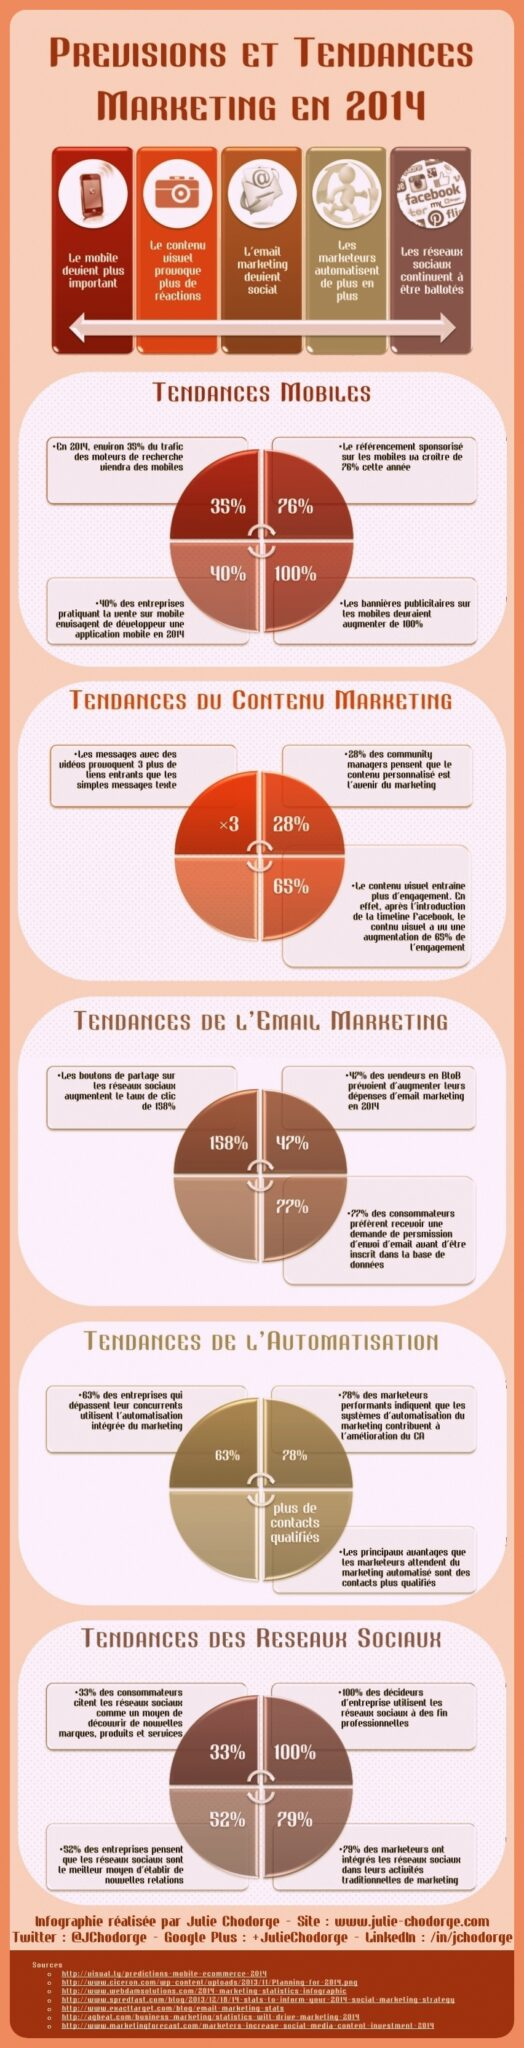 Infographie : Tendances du Marketing en 2014